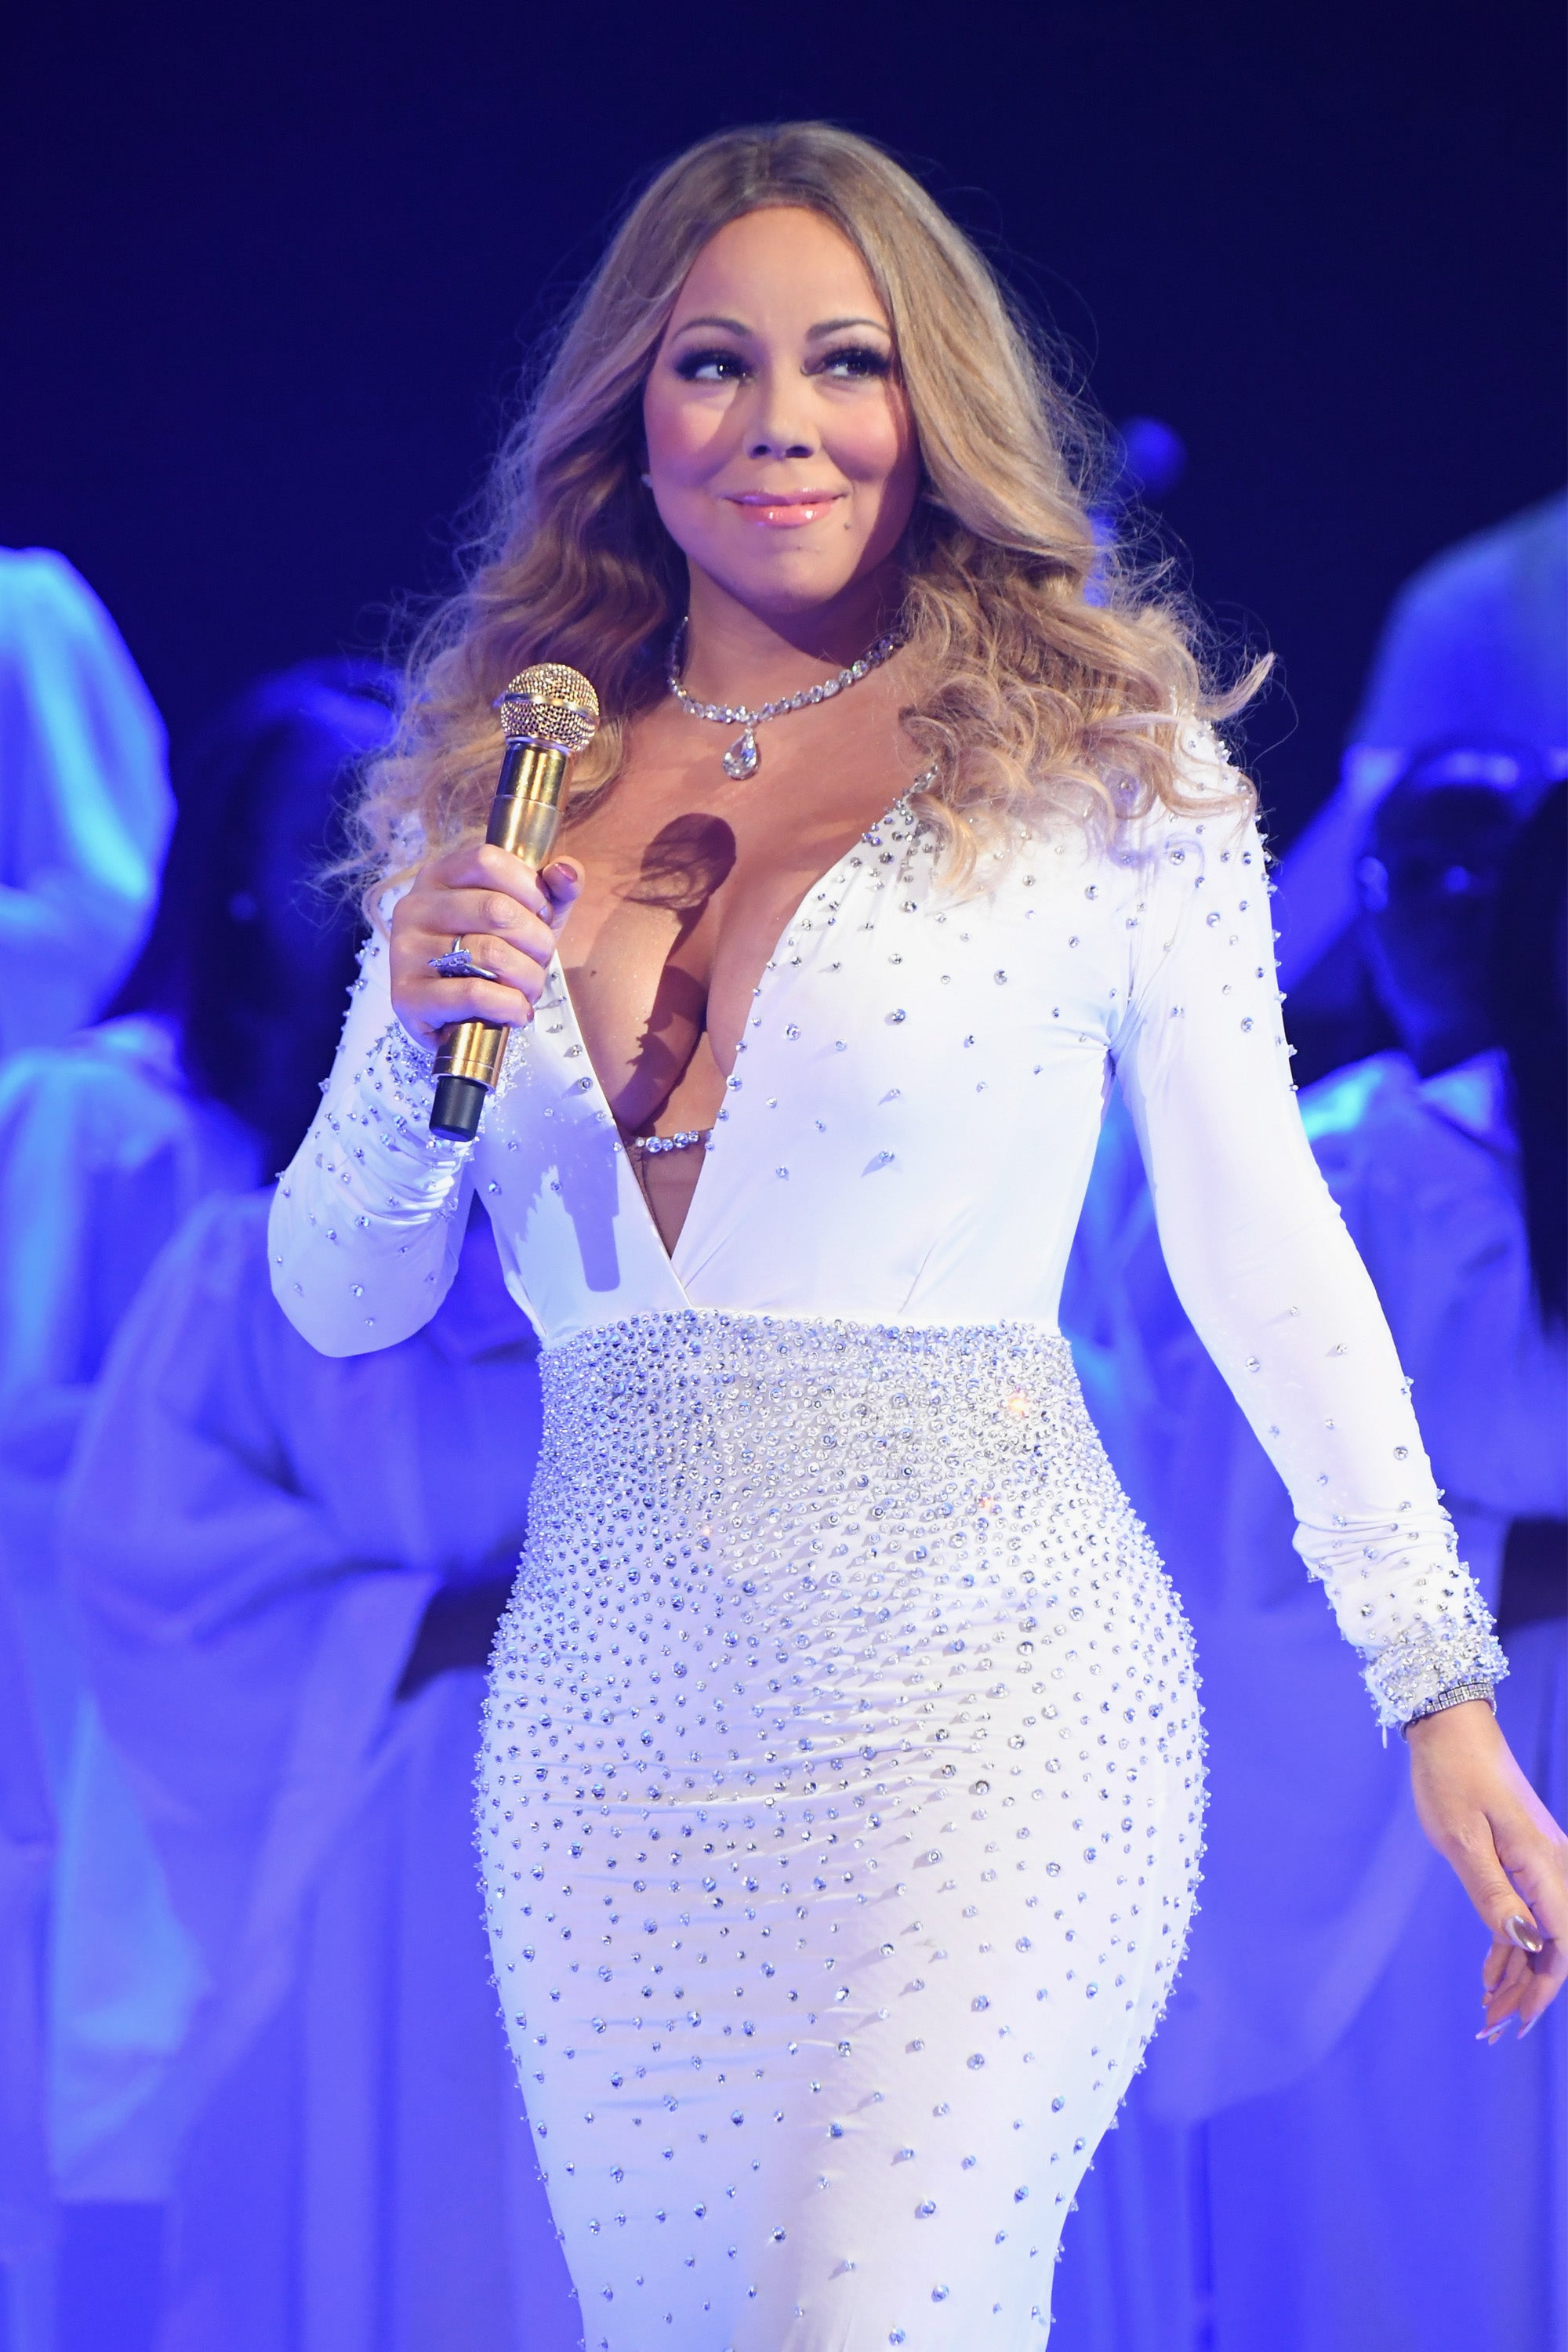 Mariah Carey Explains Why She Insisted On Being In A Christian Movie About Christmas